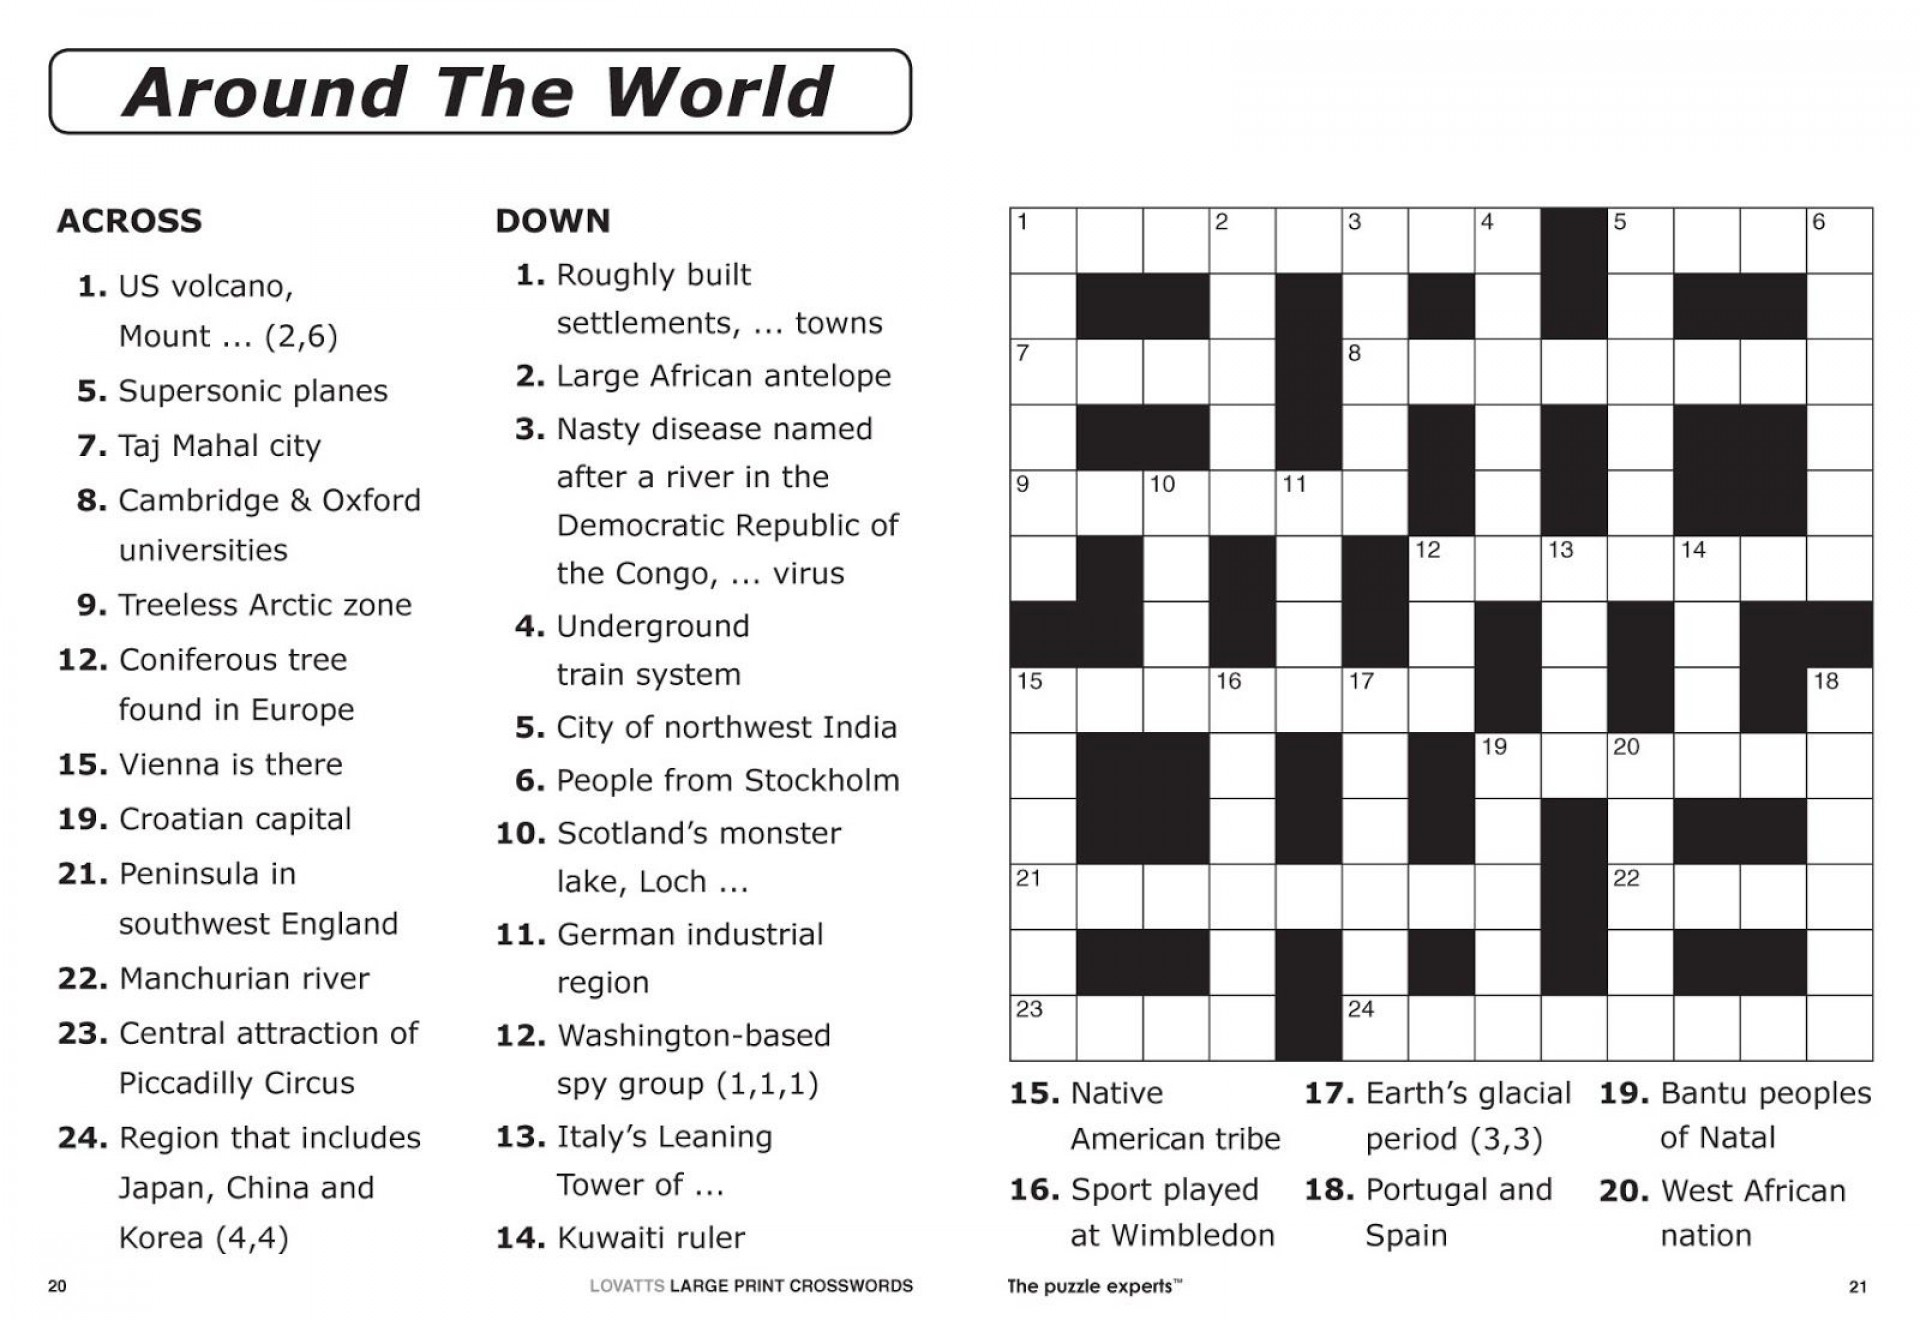 Coloring ~ Coloring Easy Printable Crossword Puzzles Large Print - Printable Crosswords.net